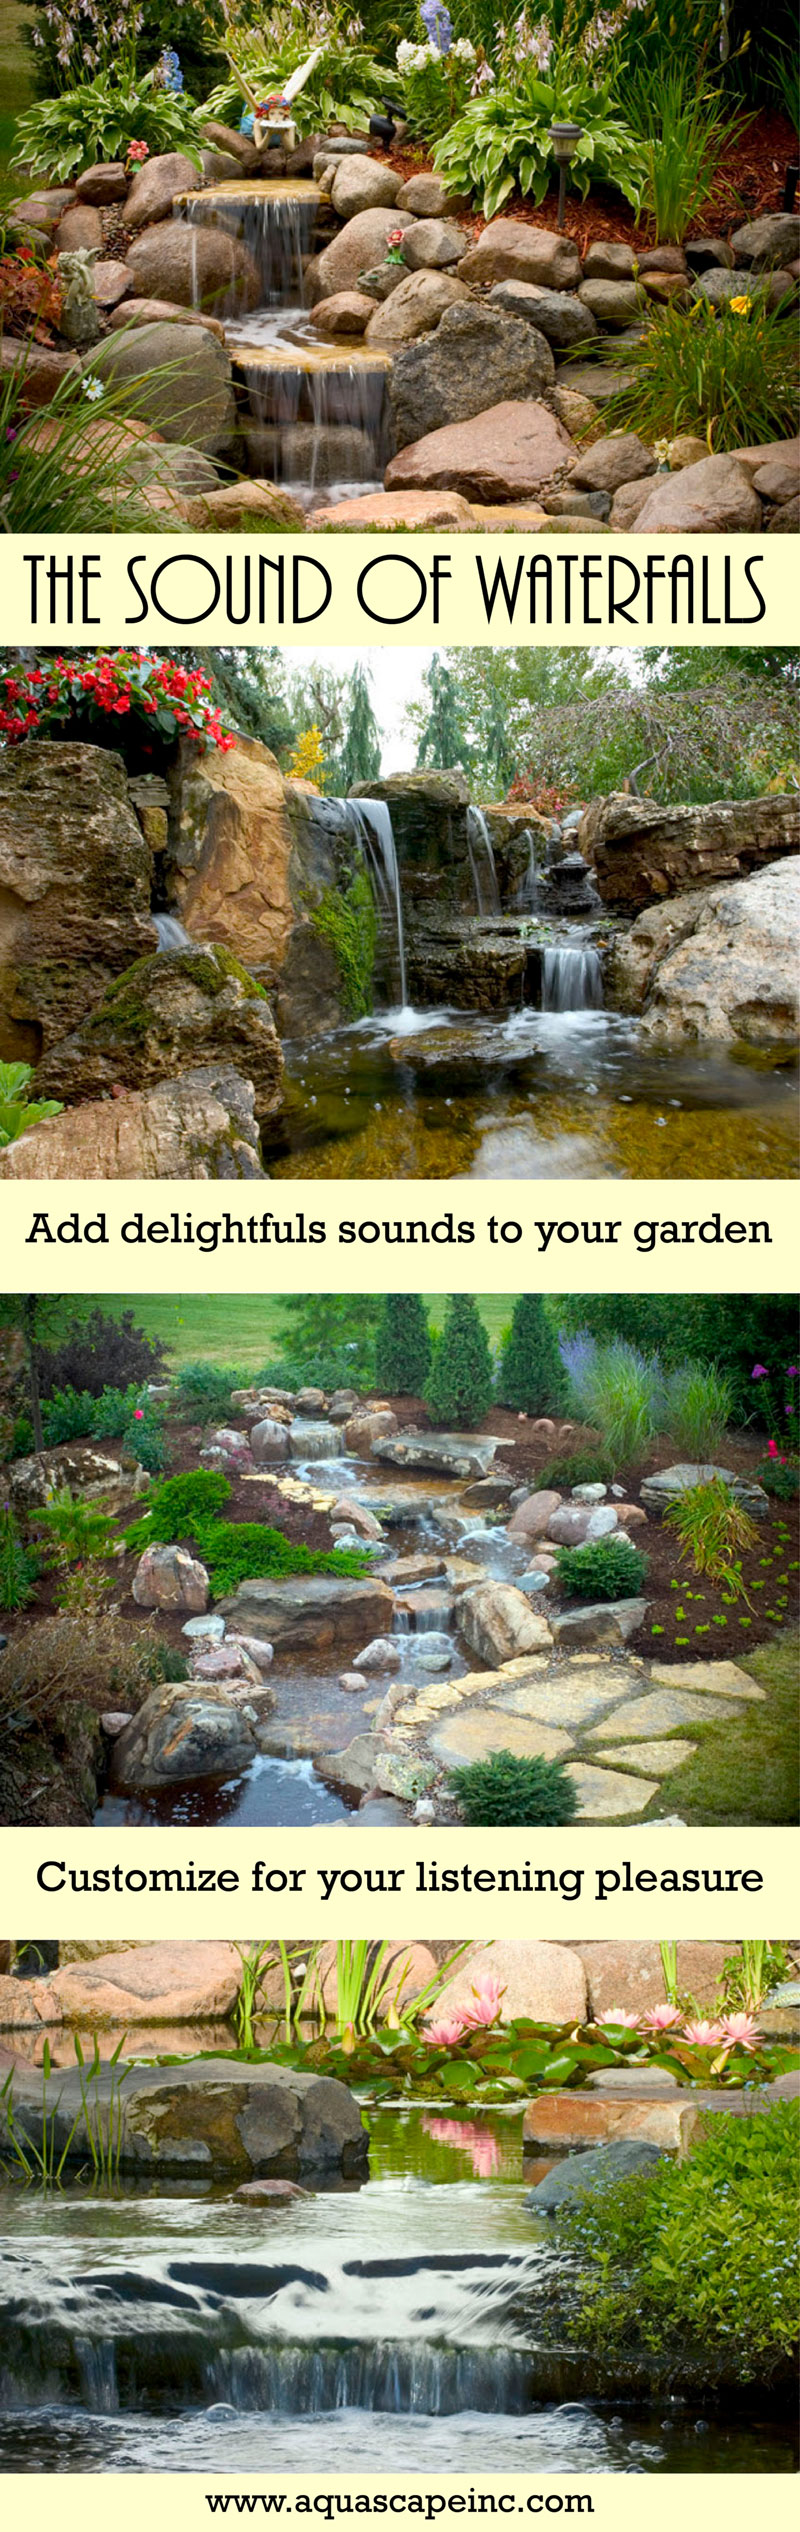 the sound of waterfalls aquascape inc